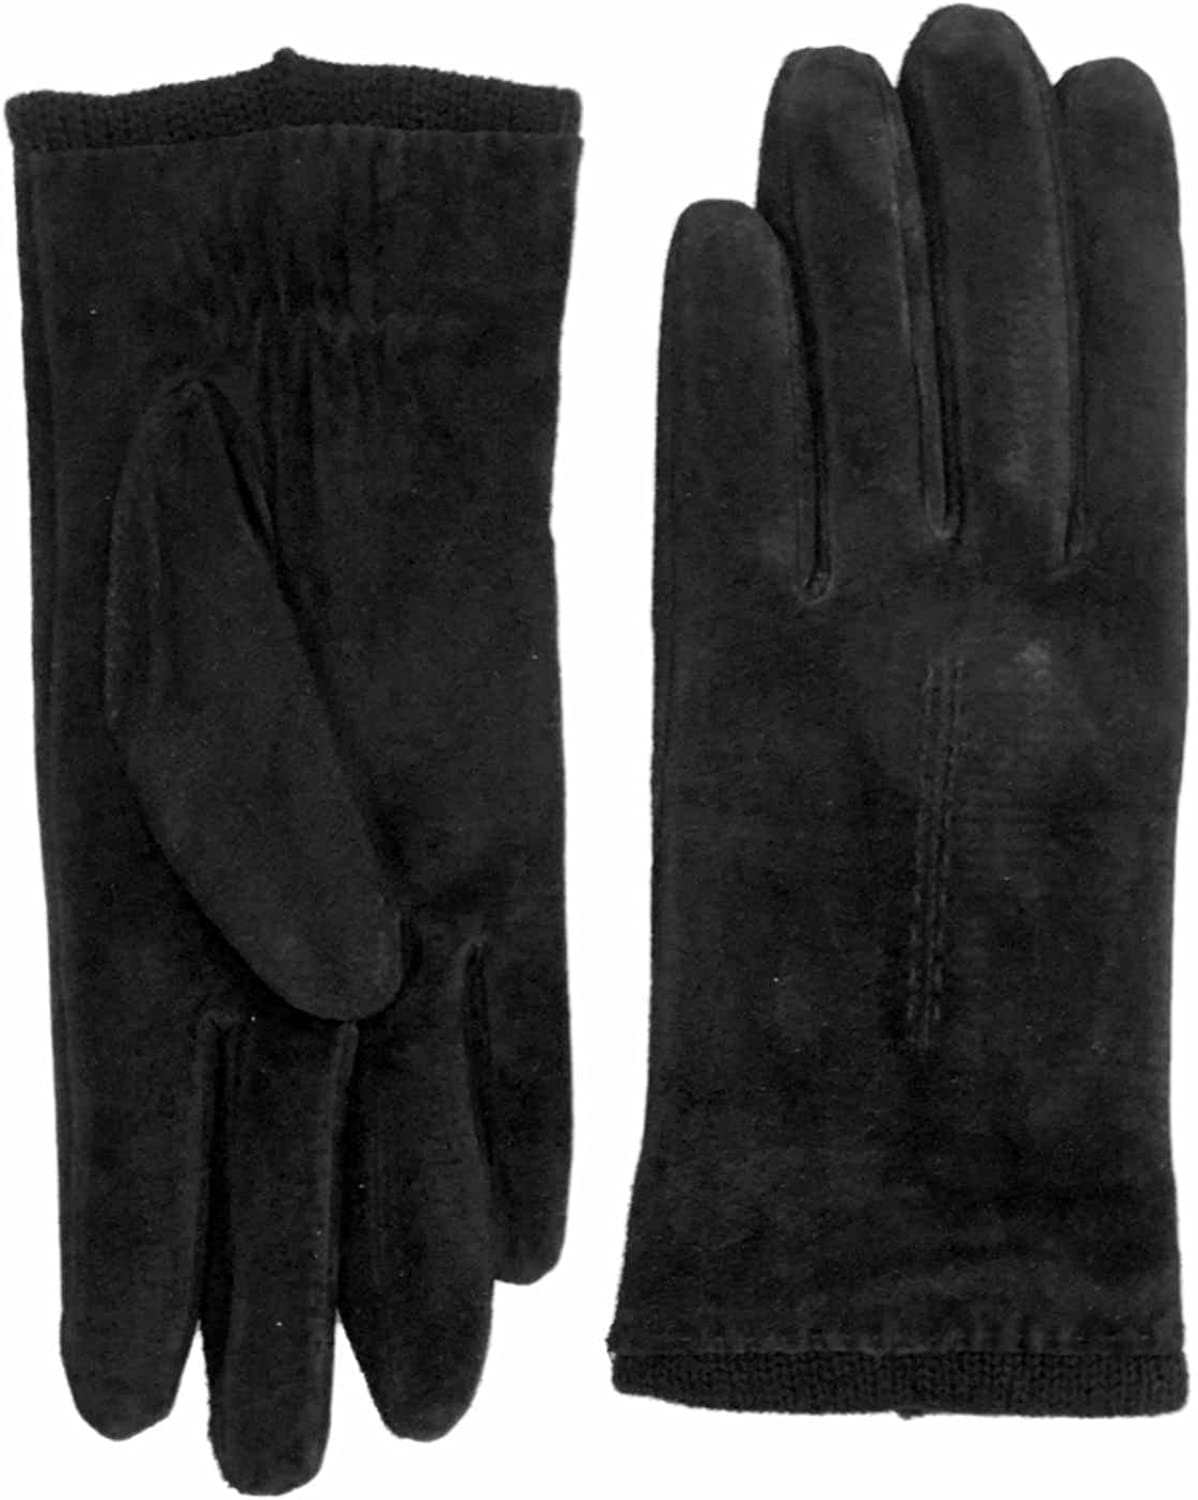 Fownes Womens Black Suede Leather Driving Gloves Acrylic Lined X-Large